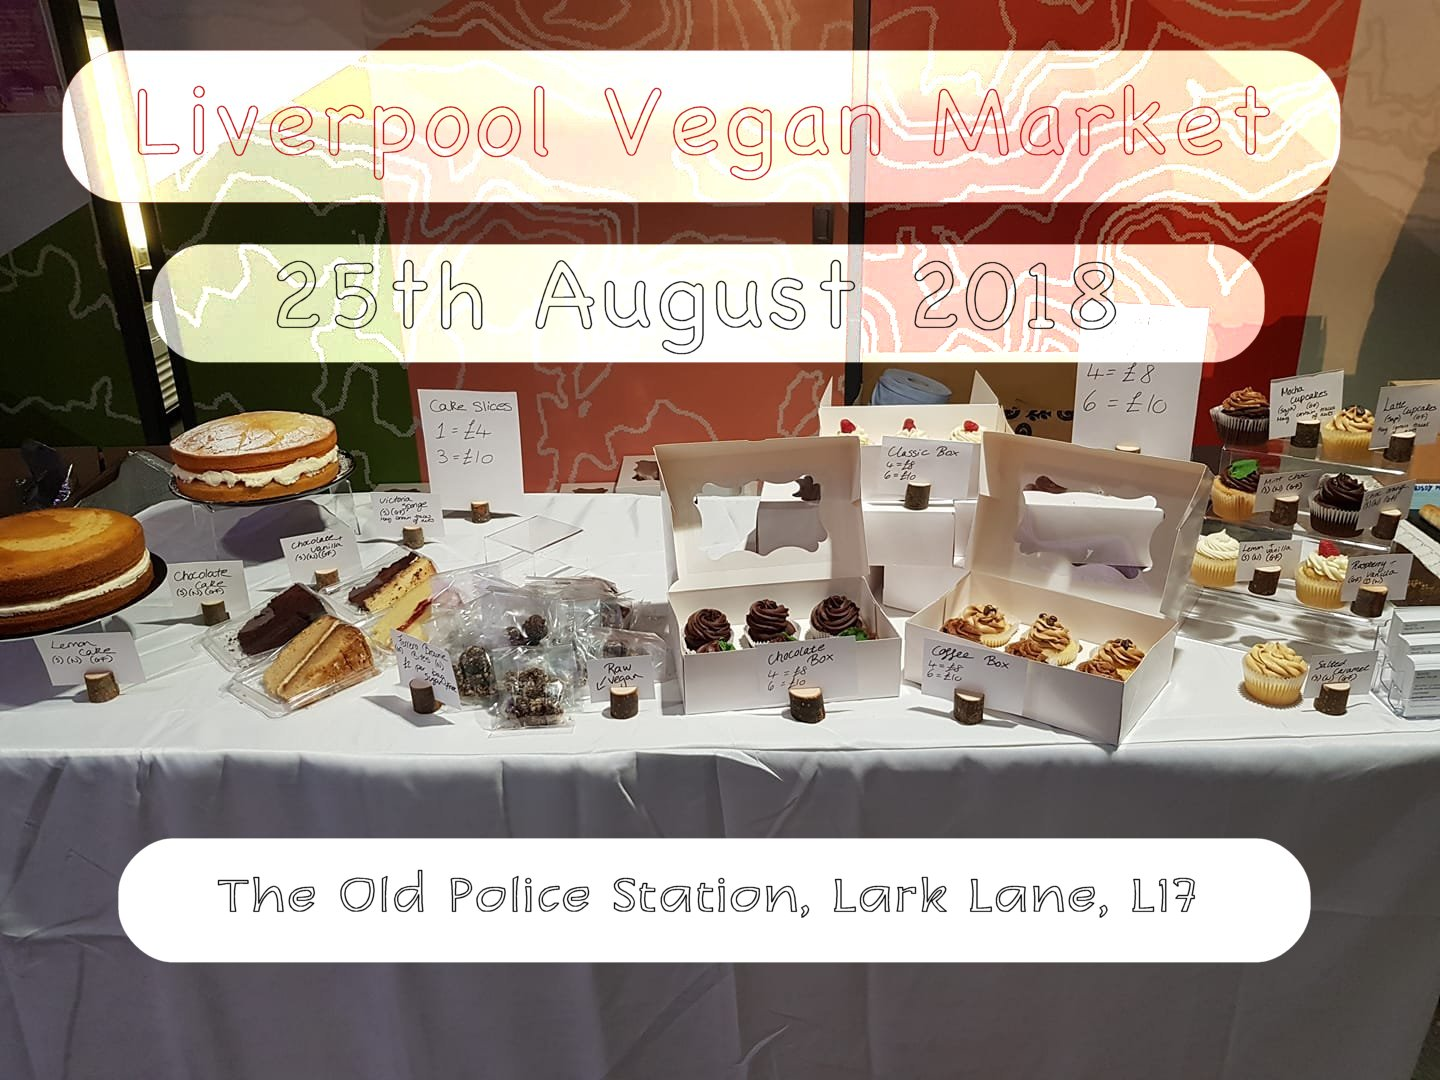 Liverpool Vegan market - August 25th